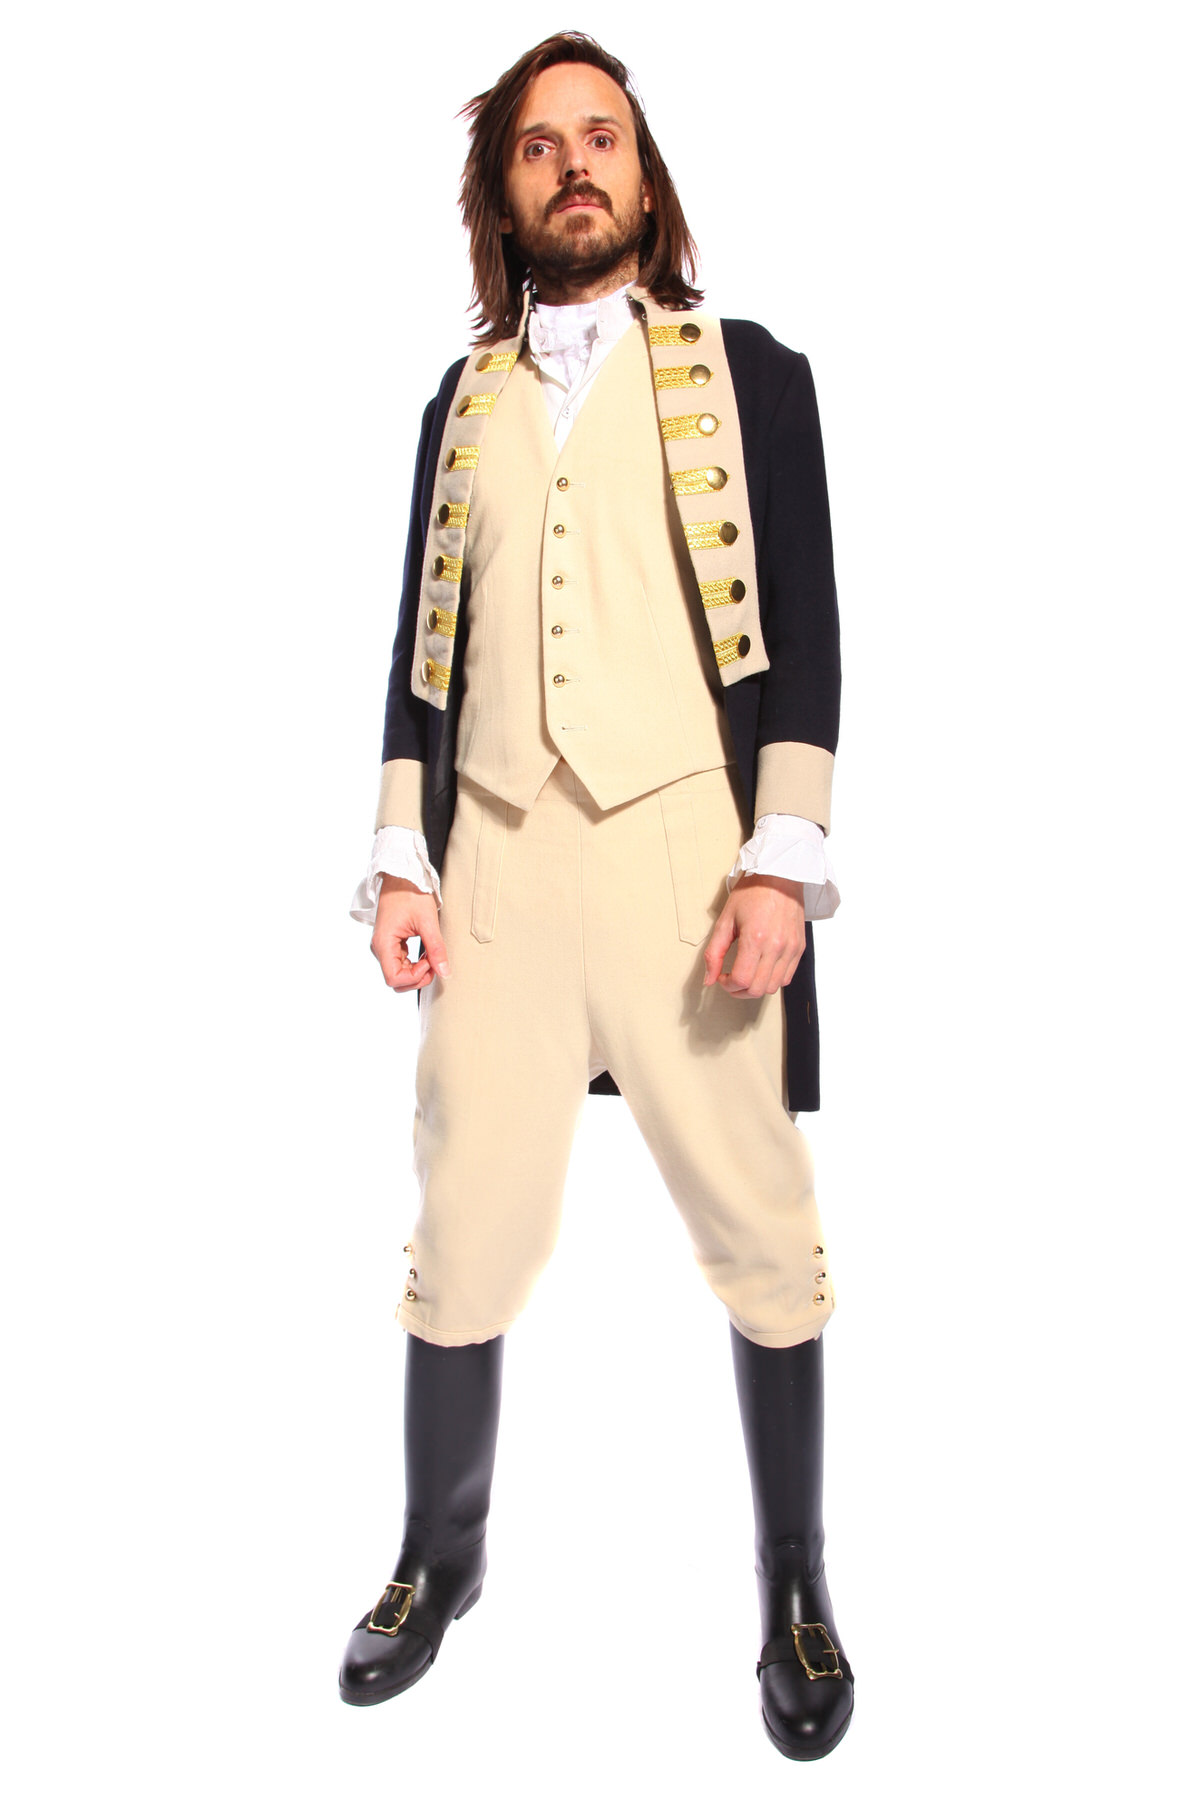 REGENCY NAVAL UNIFORM COSTUME W MATCHING WAISTCOAT